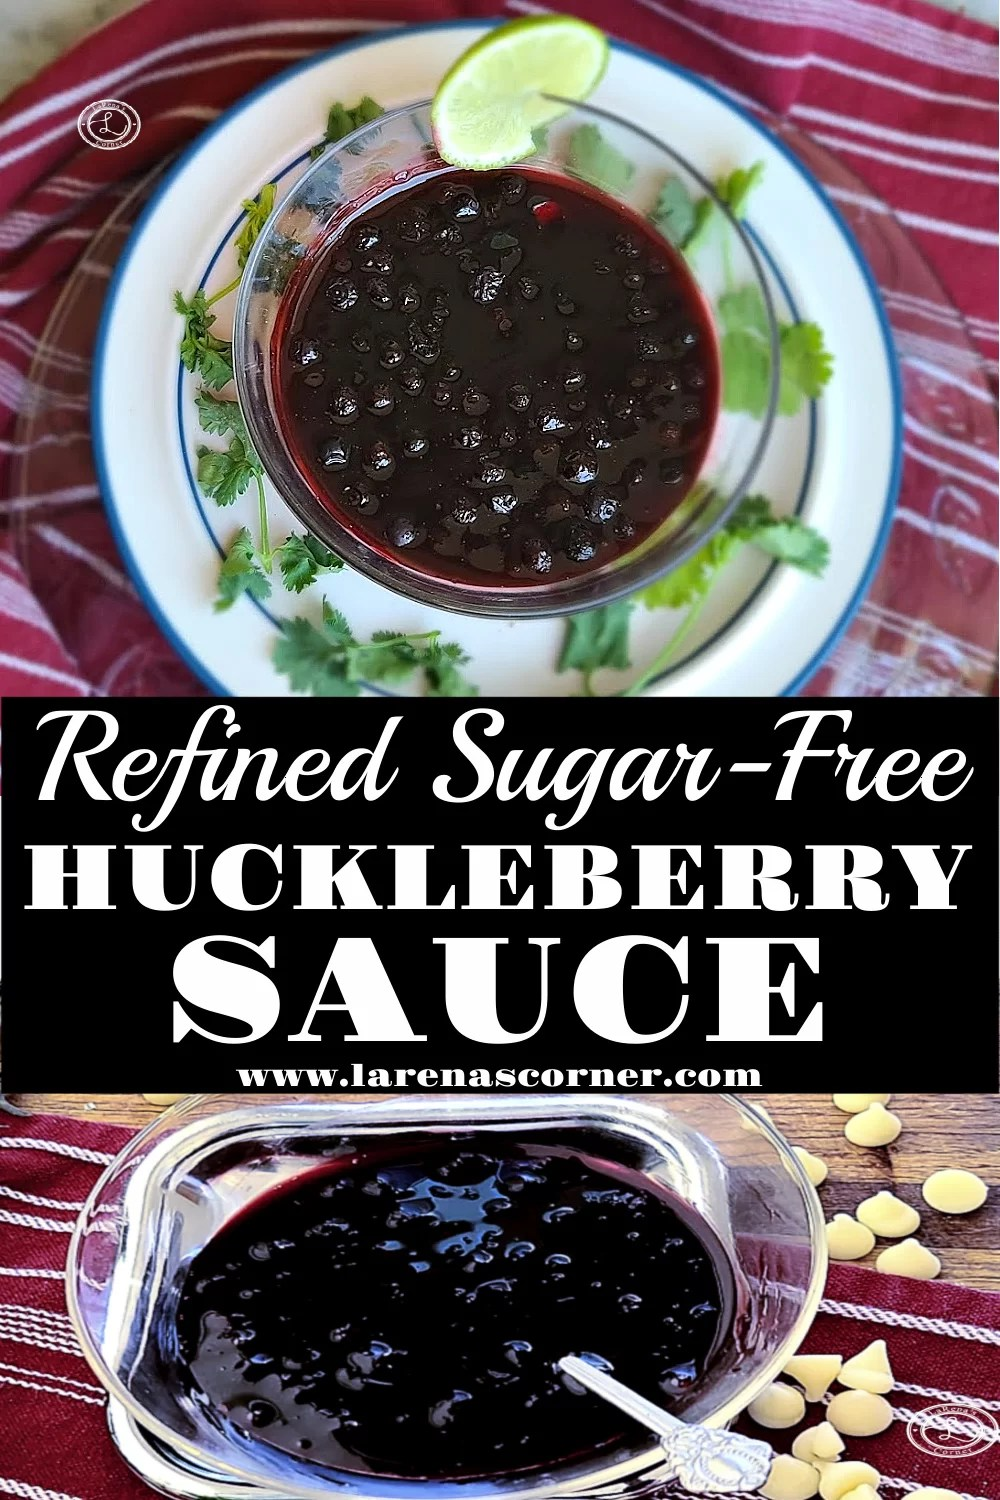 Refined Sugar-Free Huckleberry Sauce. Two pictures of this delectable sauce.